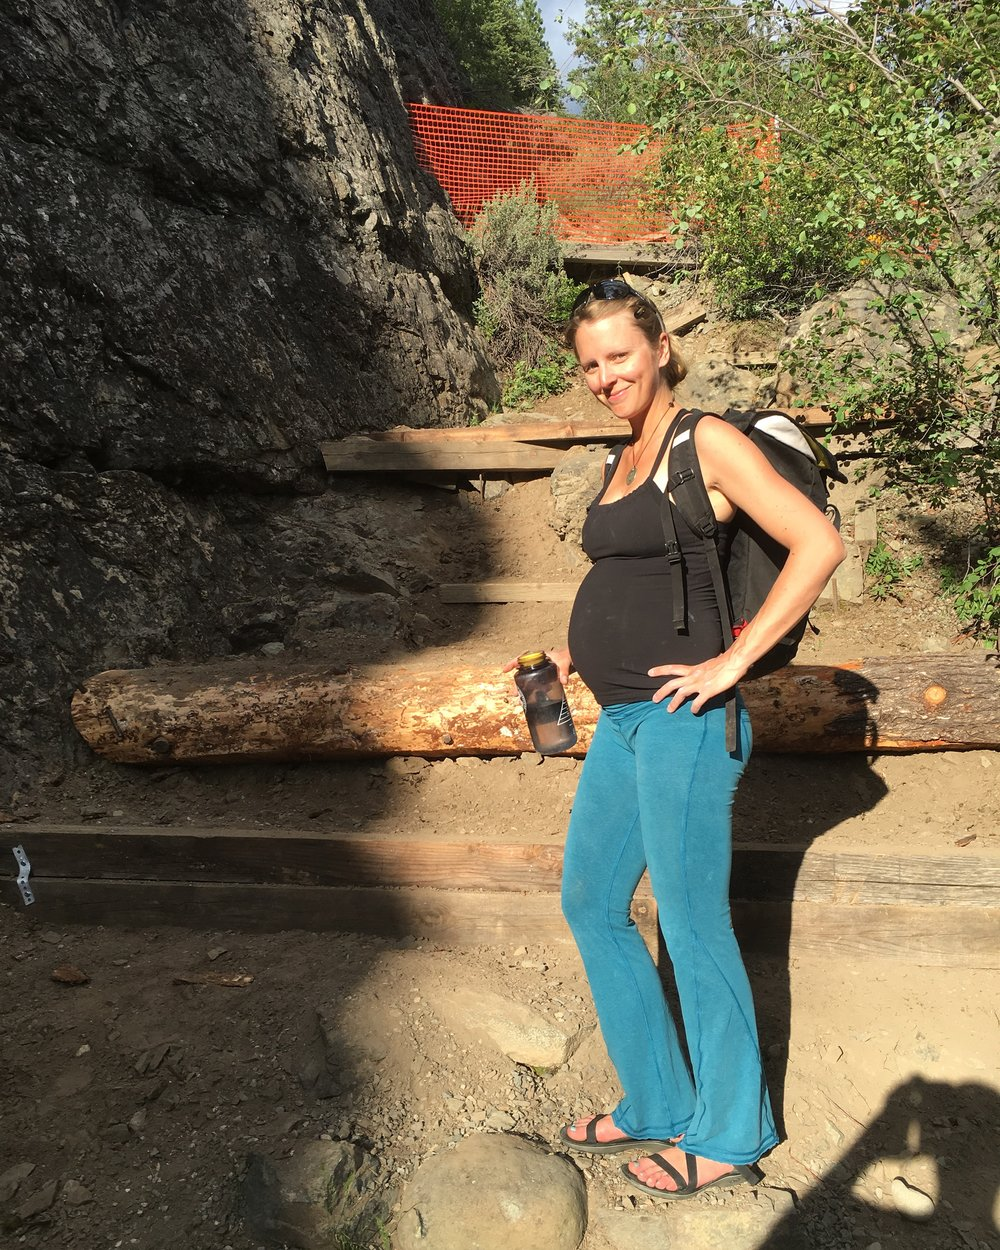 after a climbing session, Mazama, thirty-six weeks pregnant